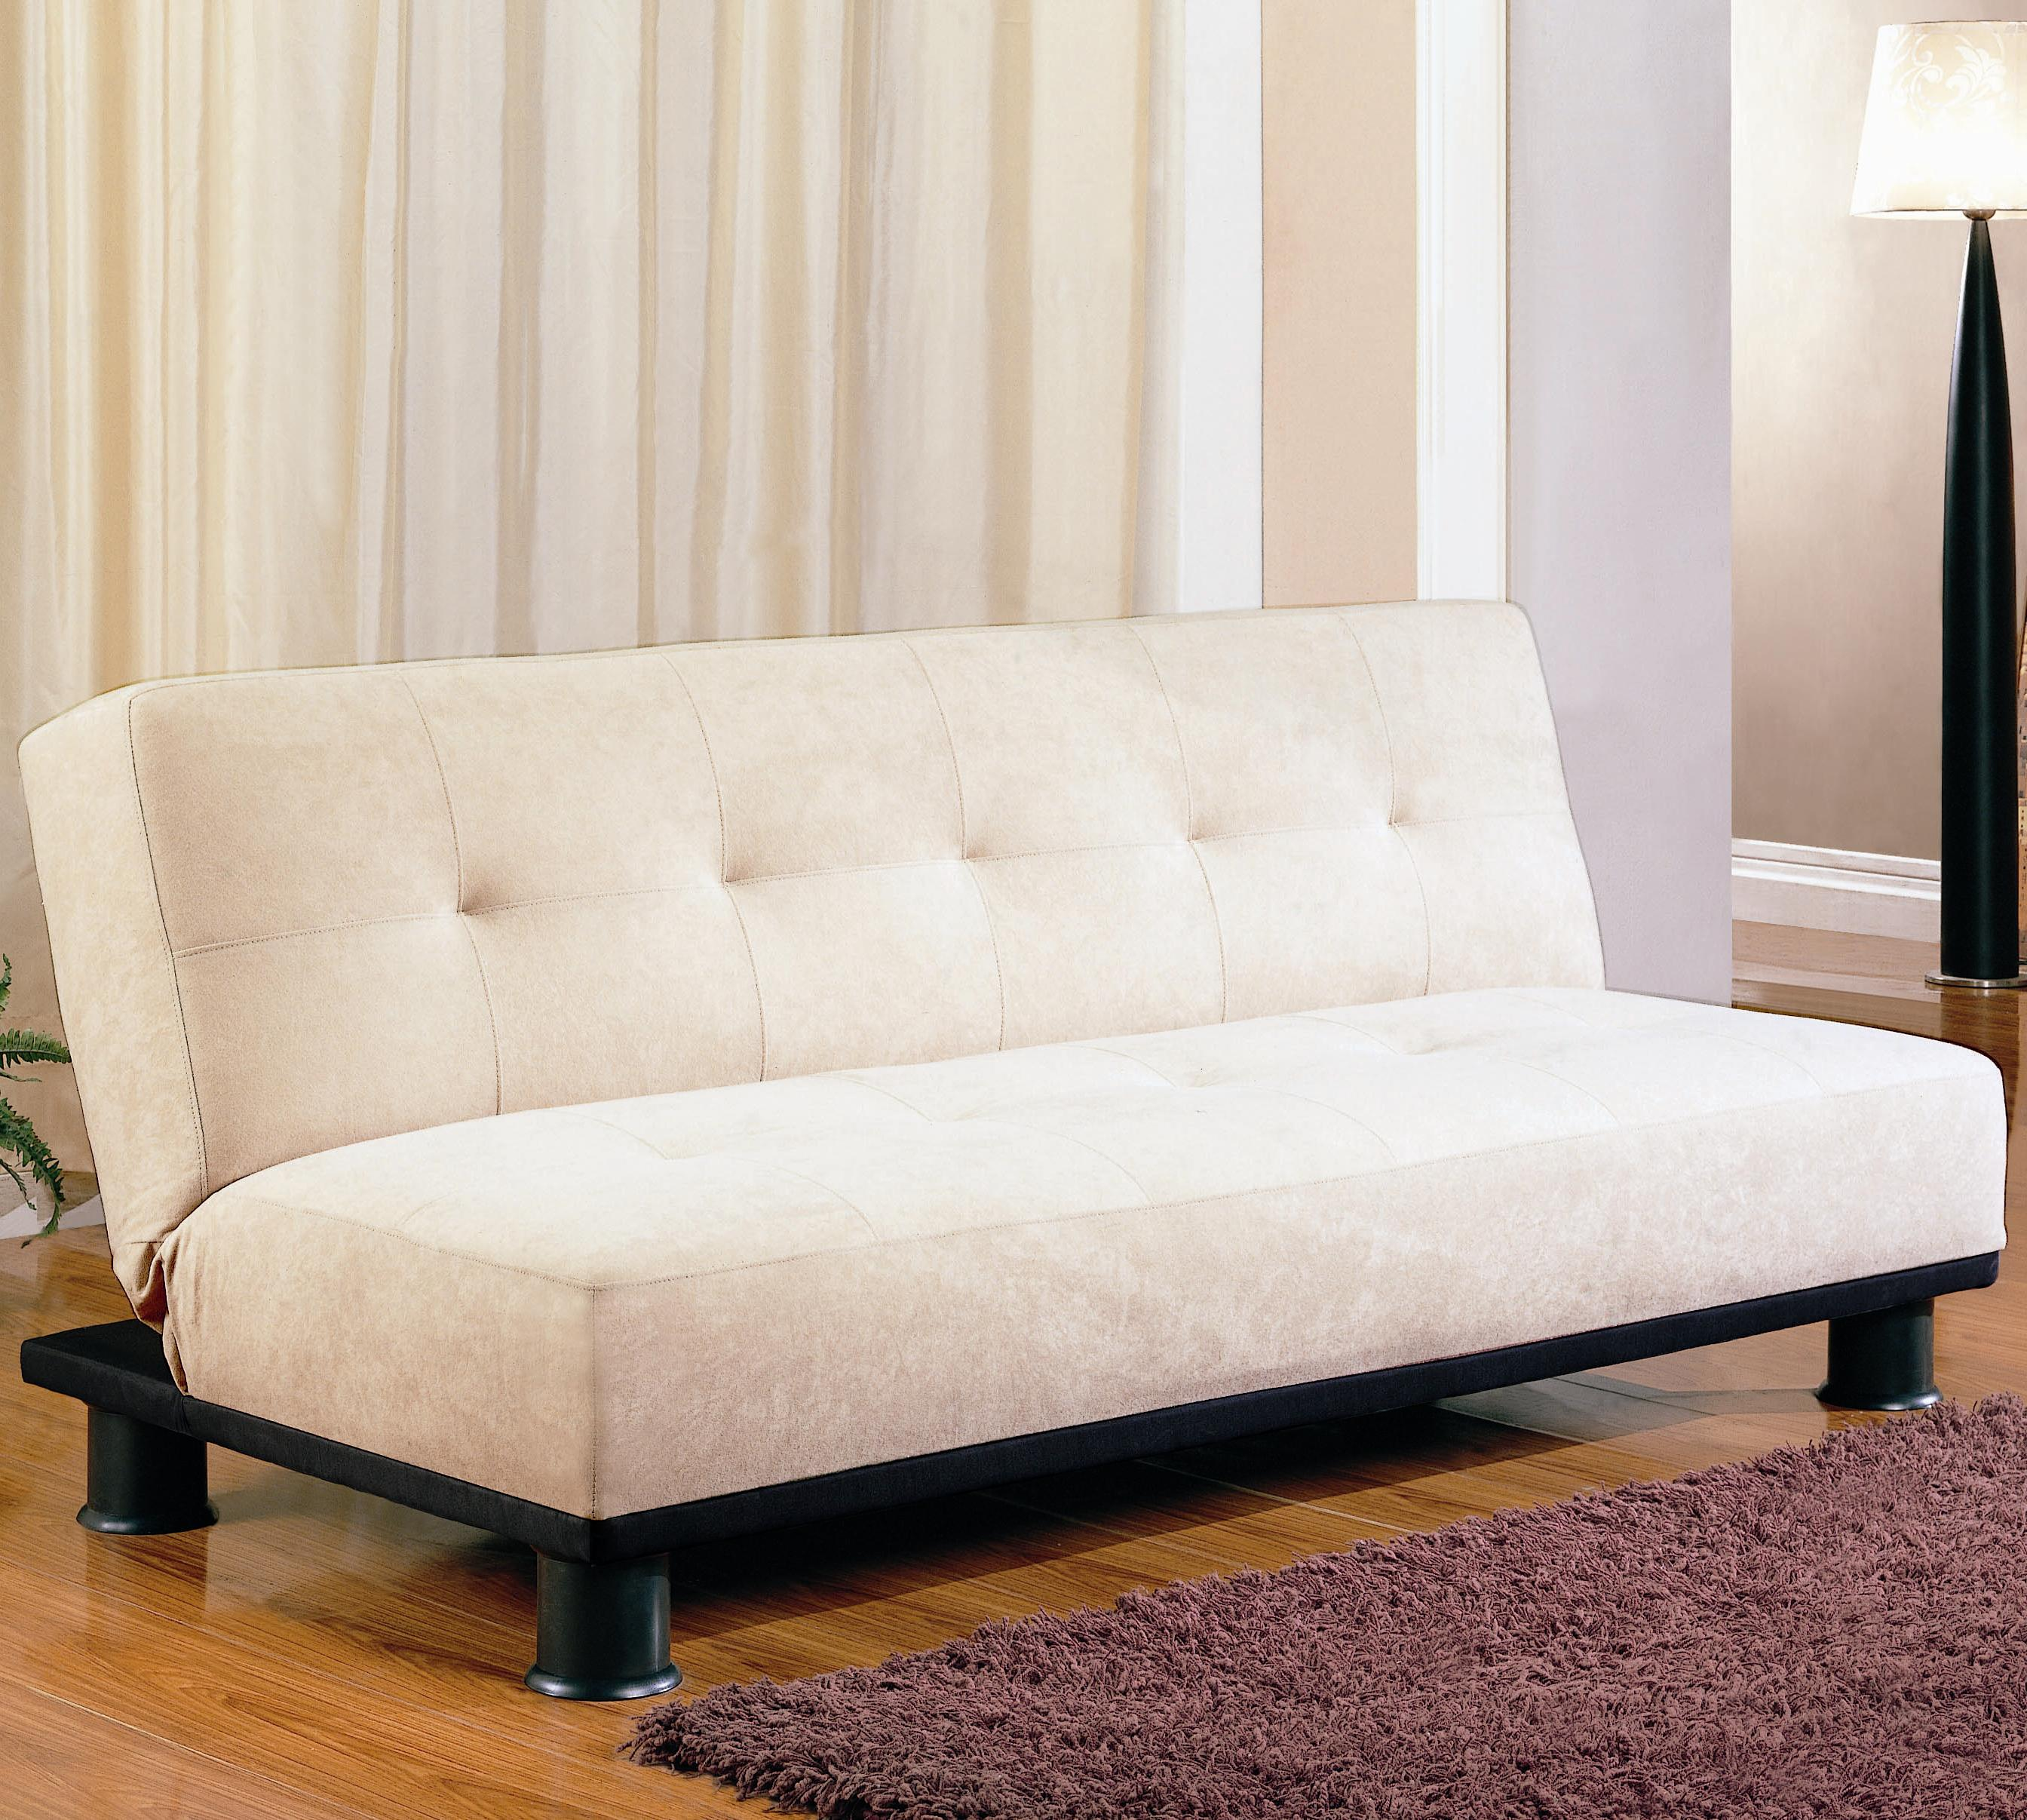 Sofa Bed For Sale In Quezon City: Coaster Sofa Beds And Futons Contemporary Armless